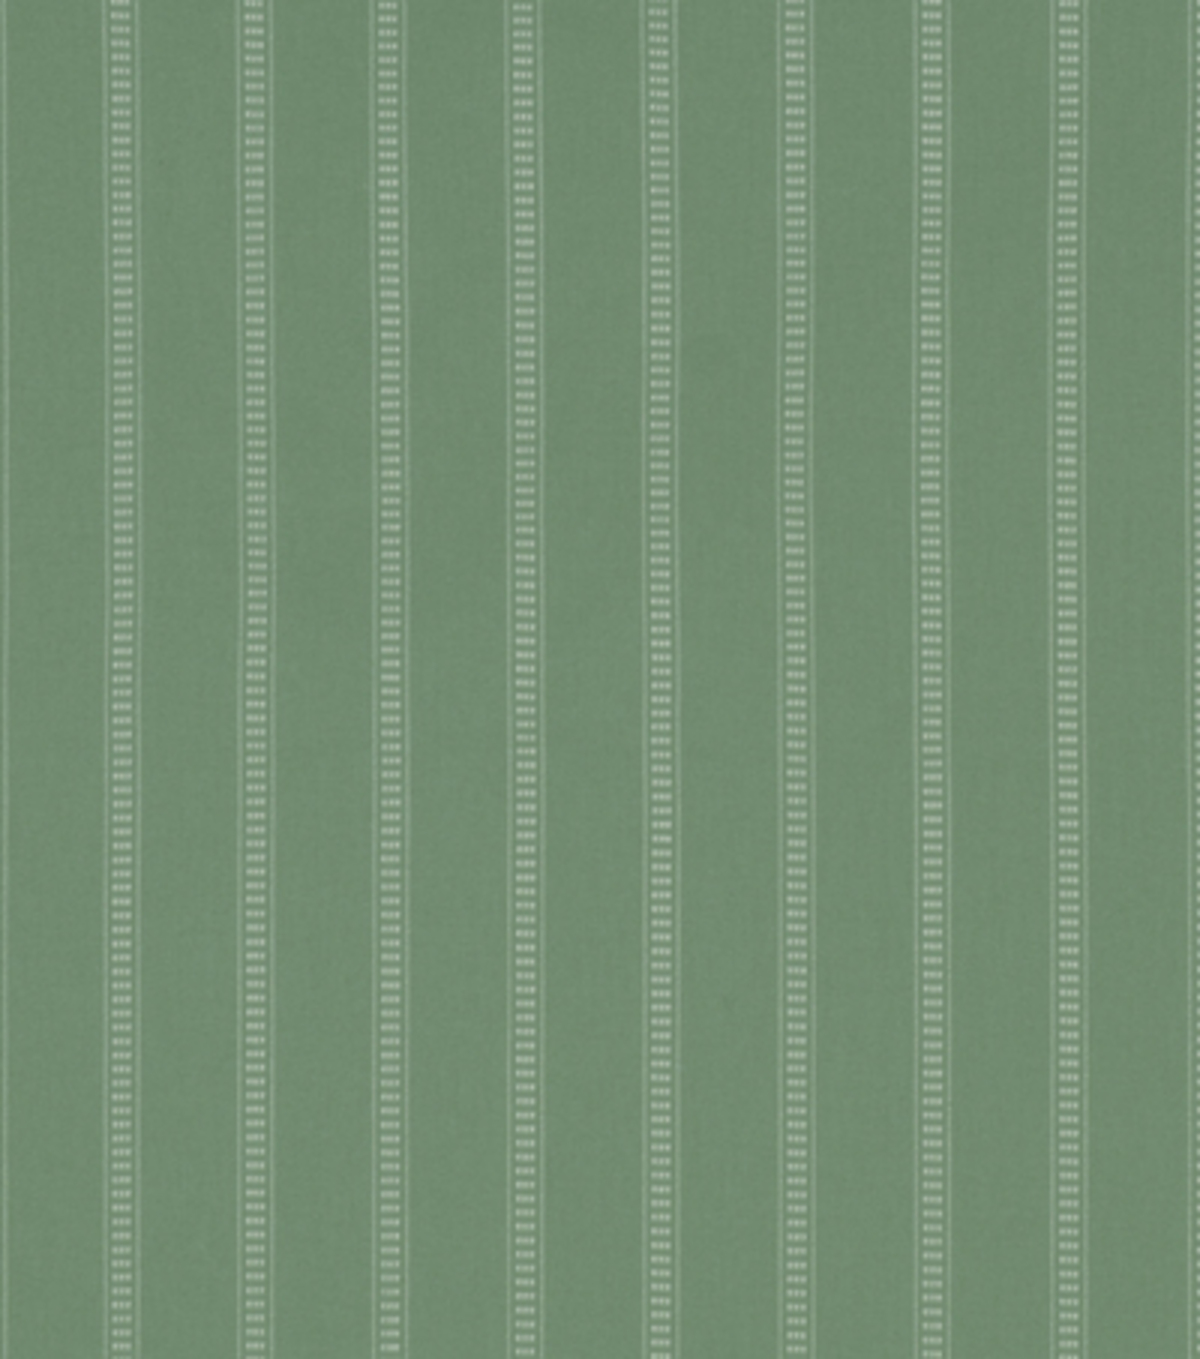 Home Decor 8\u0022x8\u0022 Fabric Swatch-Covington Skipper 509 Surf